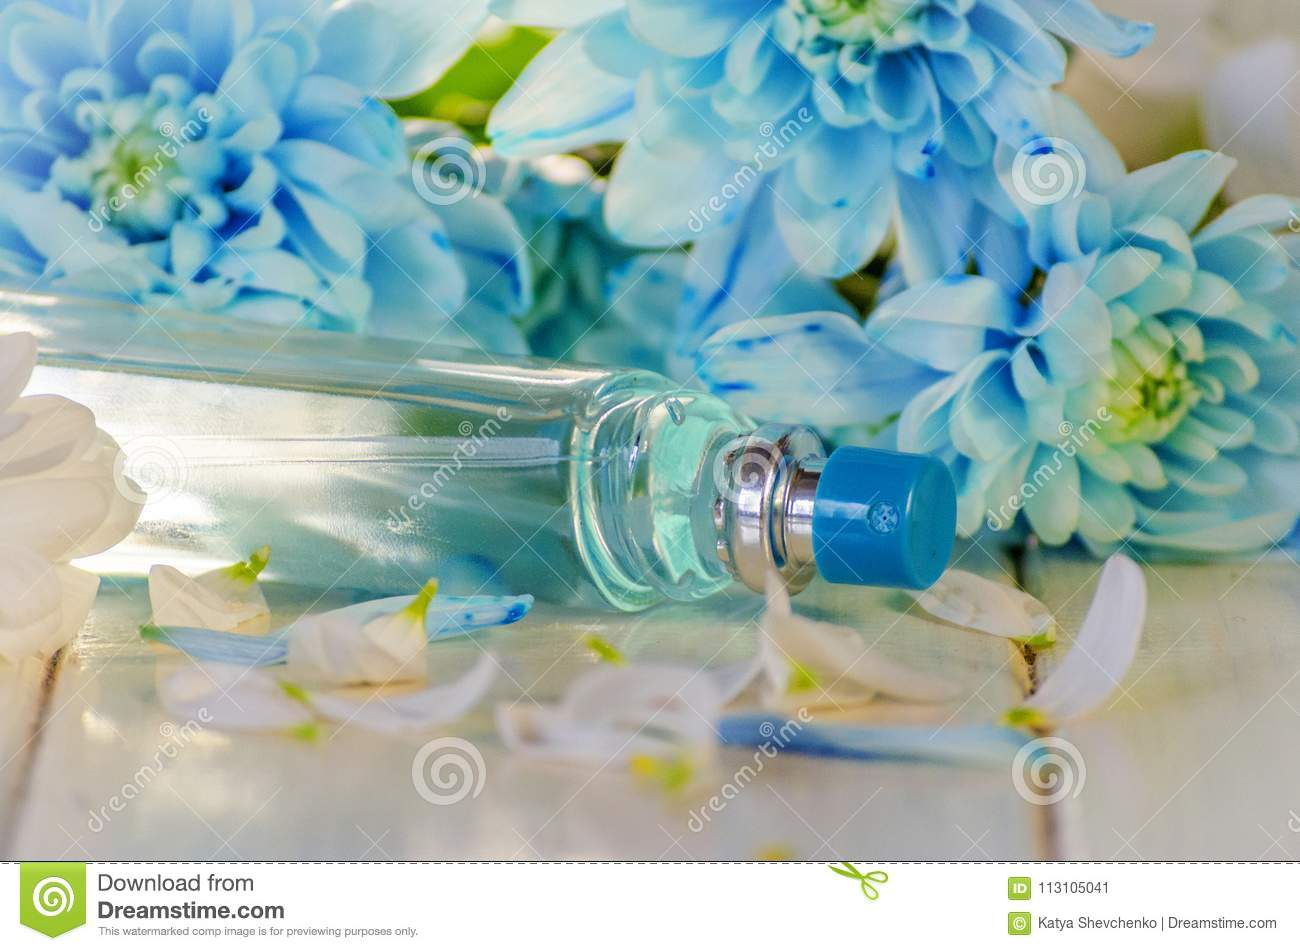 Perfume bottle on a background of flowers stock image image of download perfume bottle on a background of flowers stock image image of perfume health izmirmasajfo